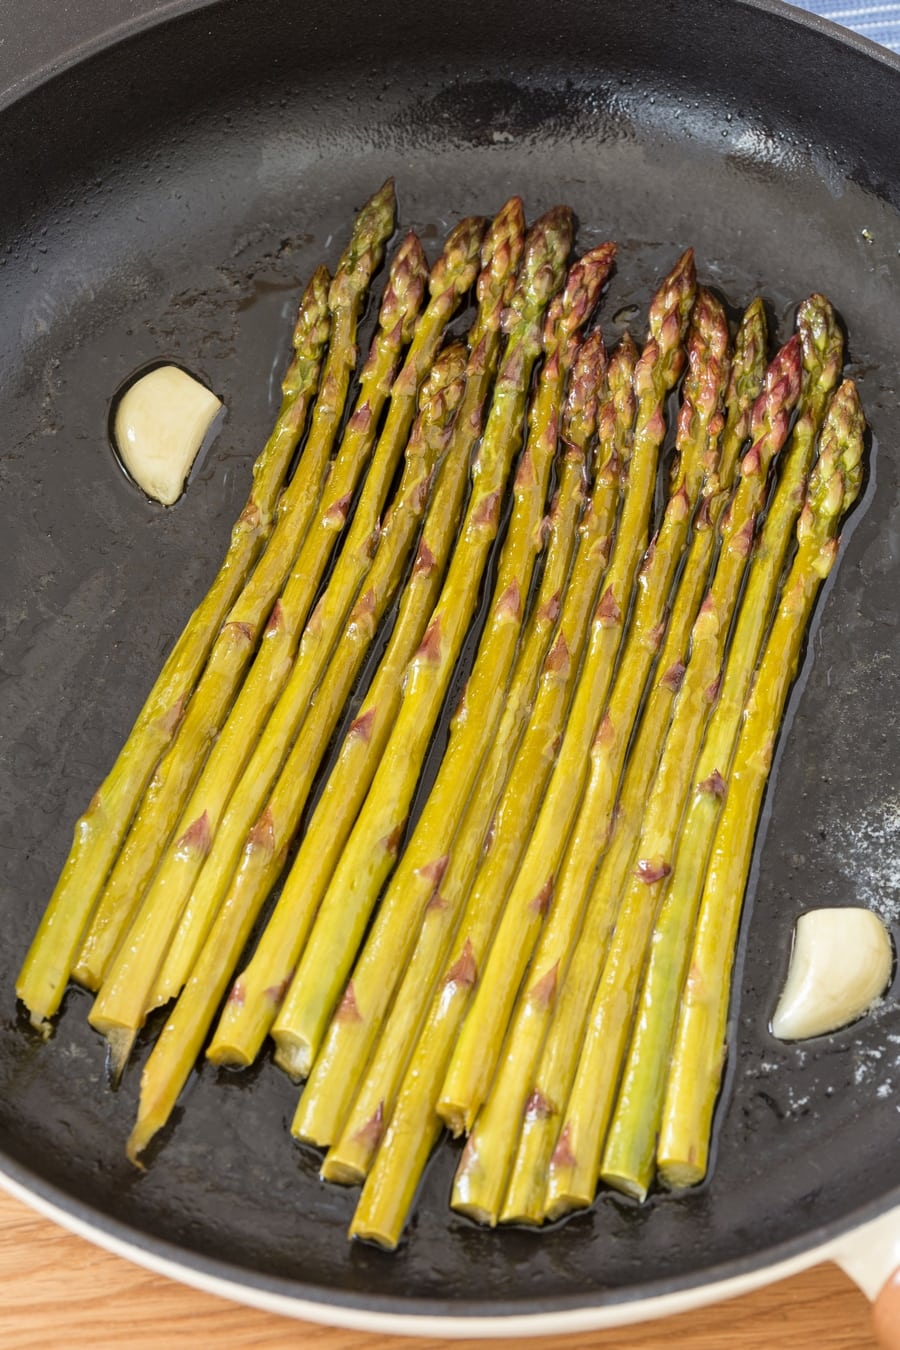 White wine asparagus in cast iron skillet.